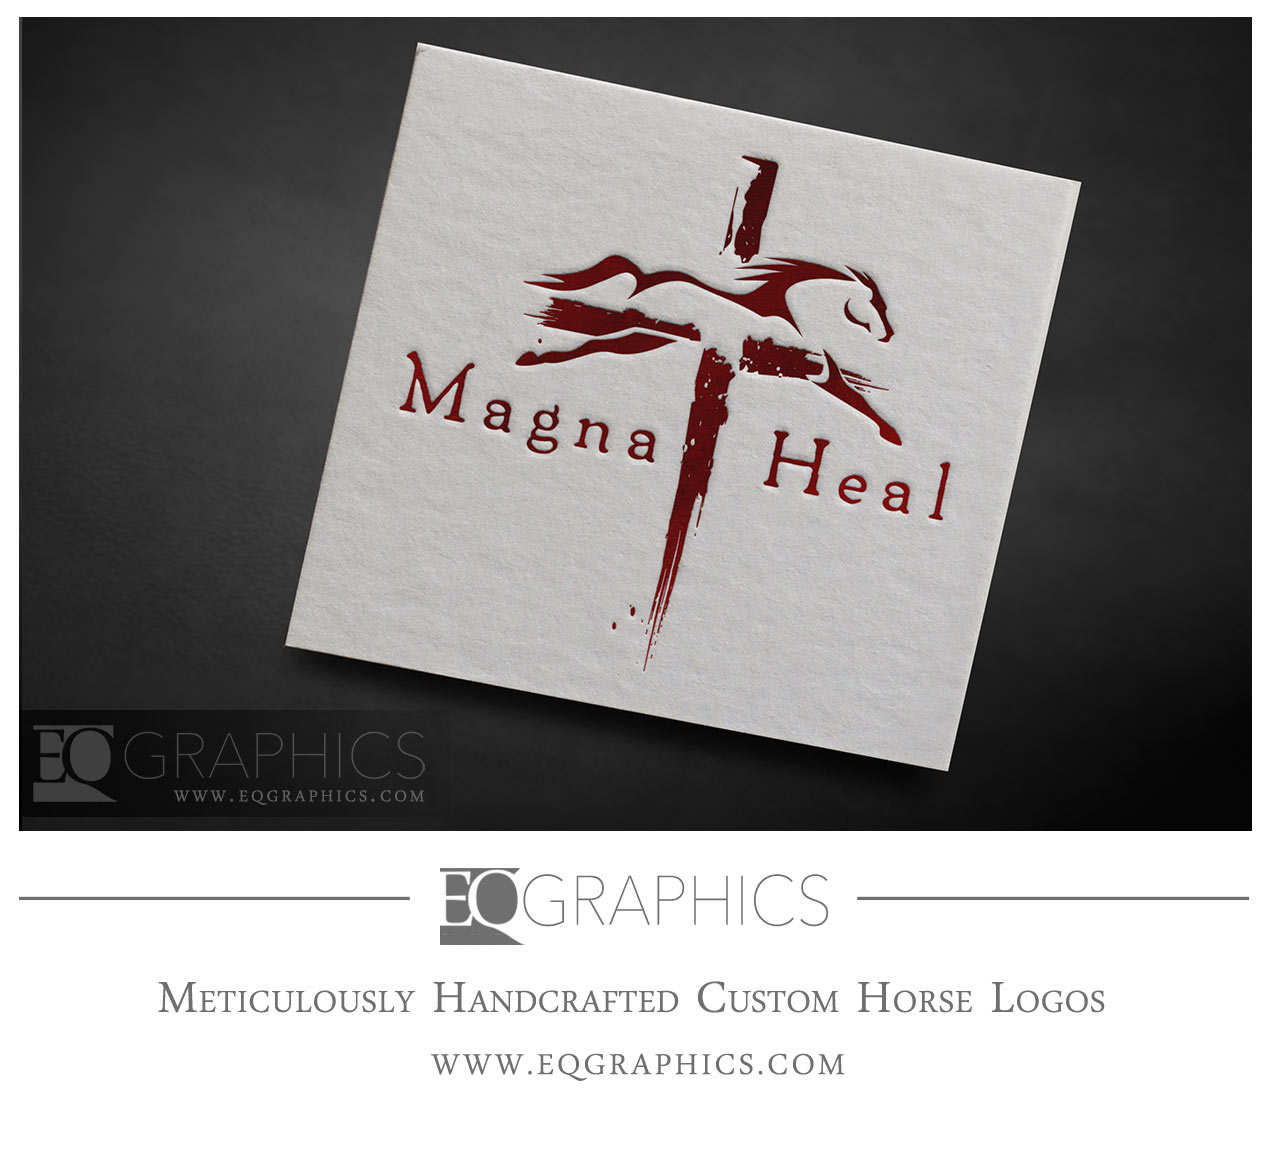 Magna Heal Equine Therapy Logo Horse Christian Cross Equine Logo by EQ Graphics